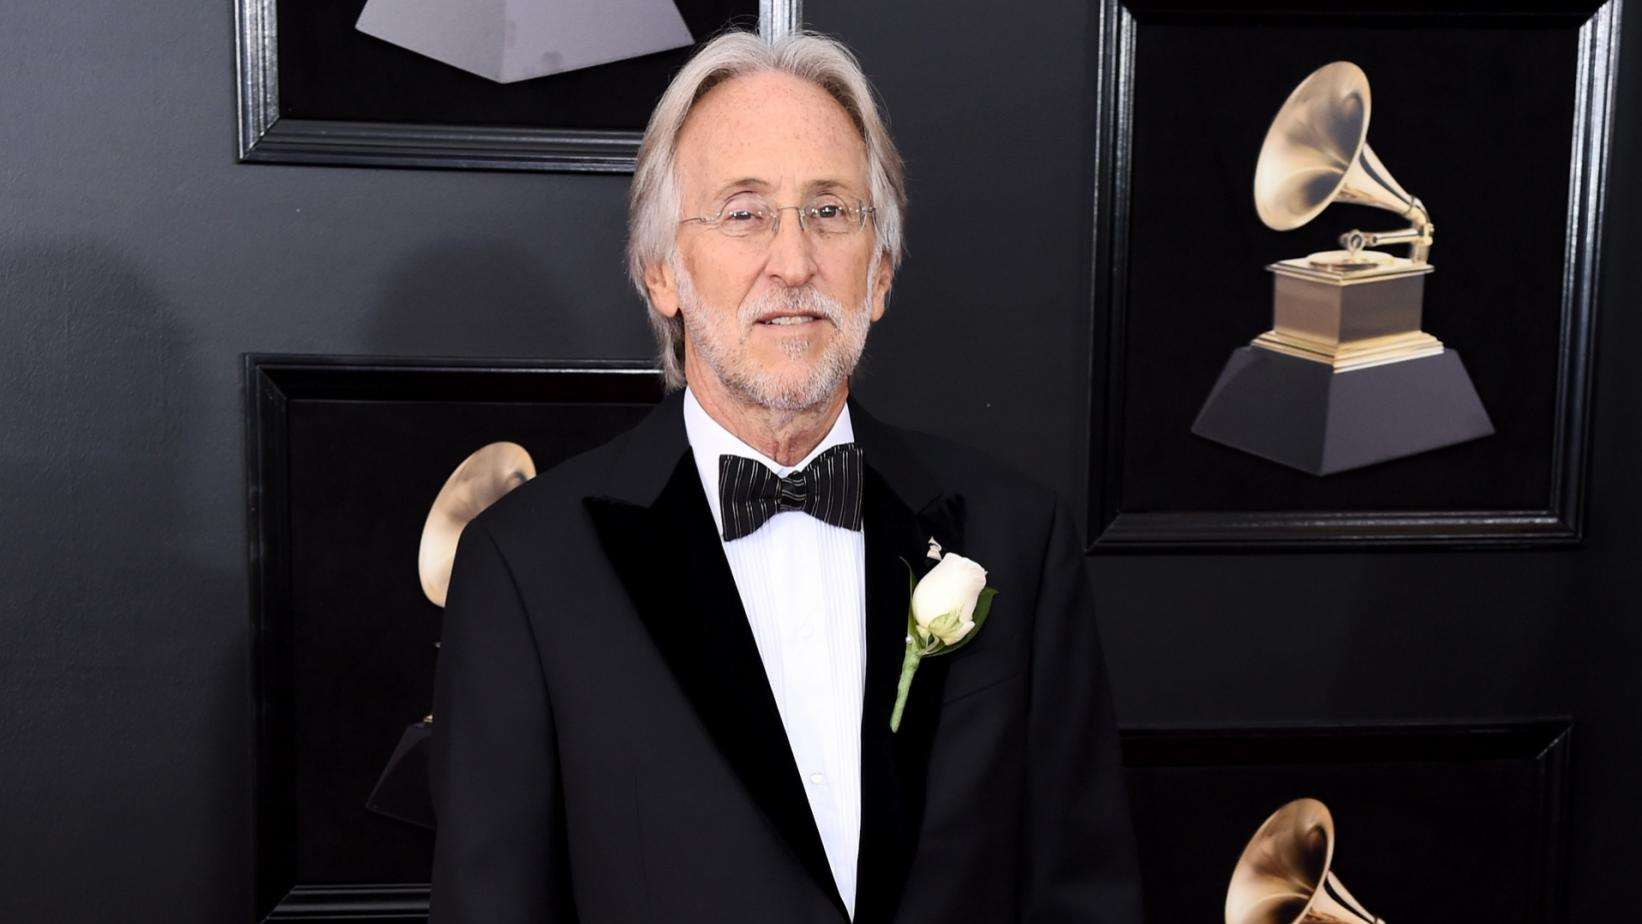 """Grammys president Neil Portnow was criticized for stating """"women need to step up"""" in the music industry after the 2018 Grammys faced a #GrammysSoMale backlash."""